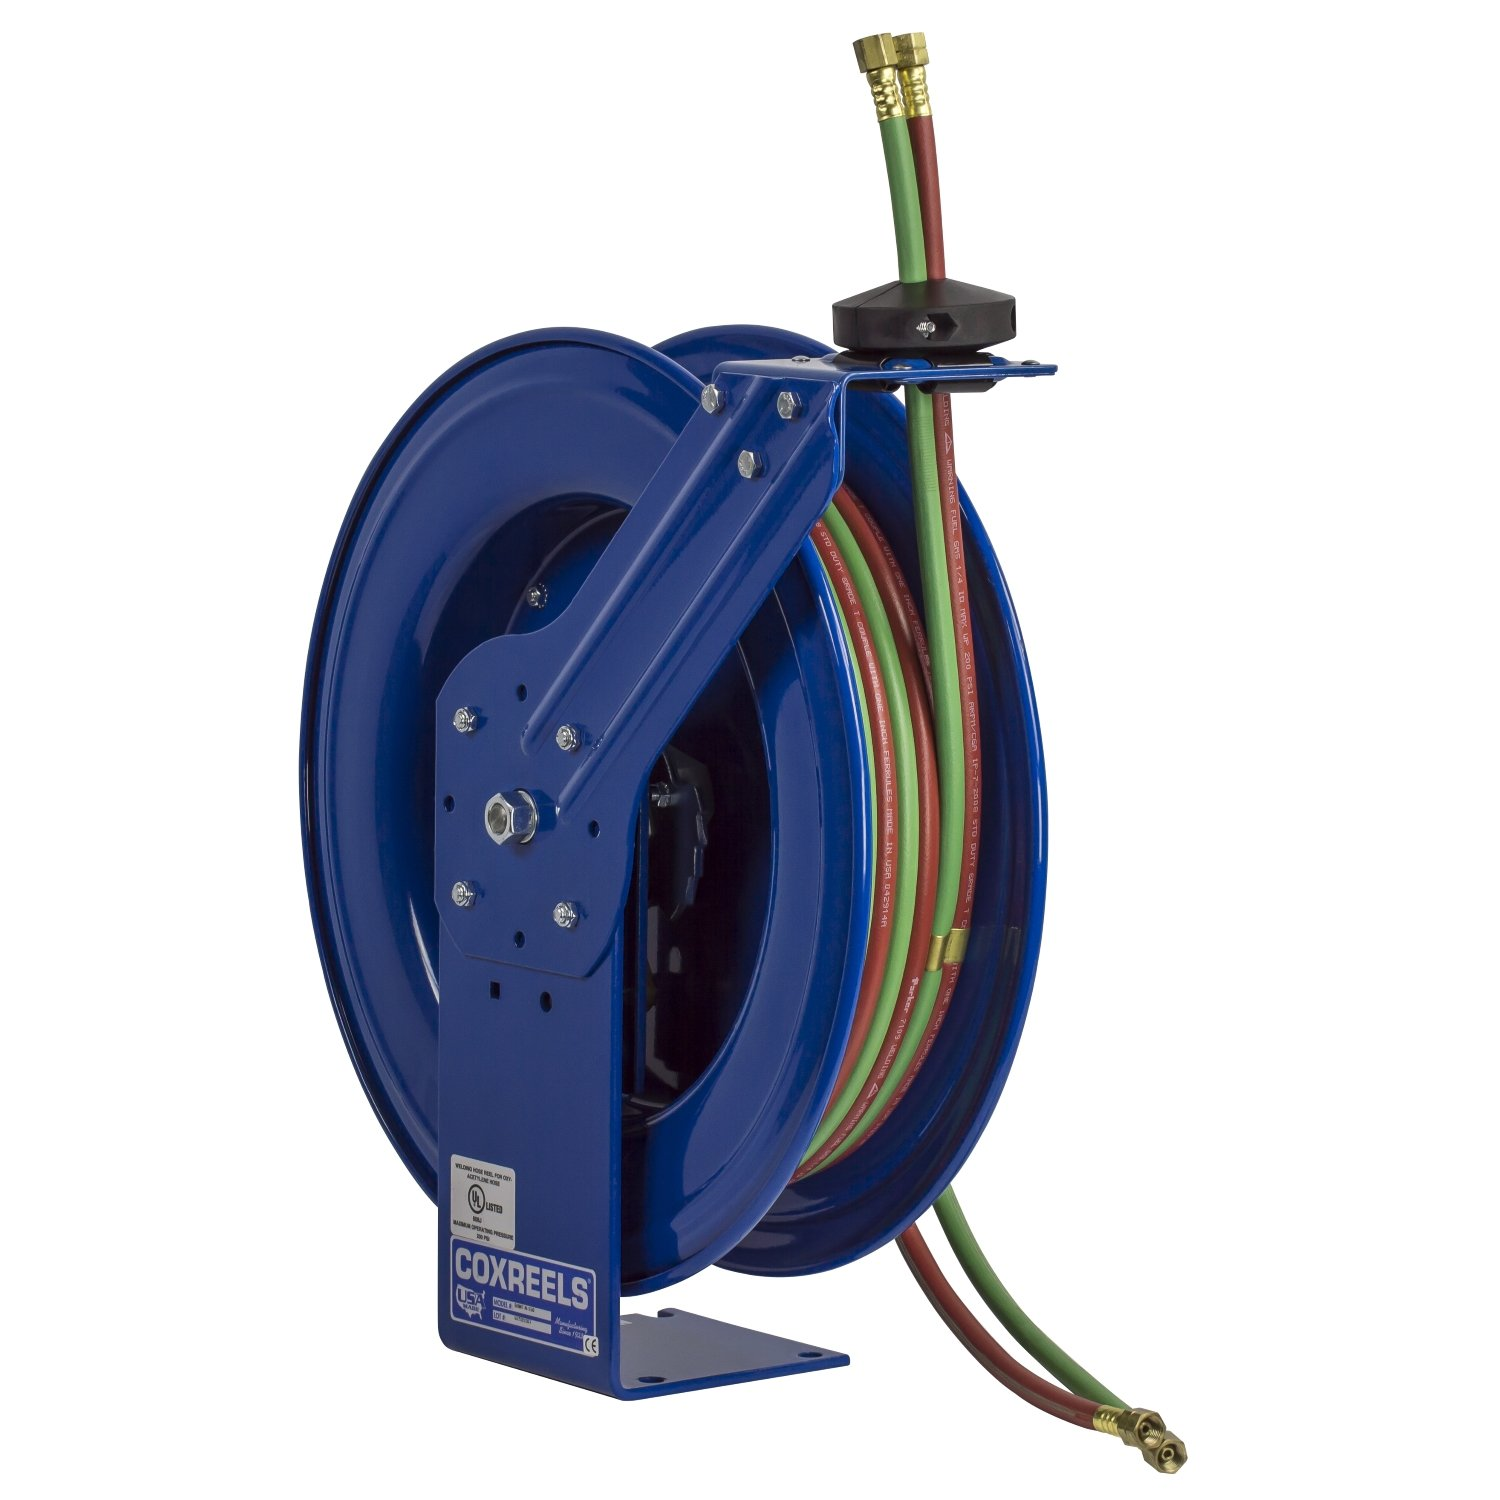 Coxreels Twin Line Spring-Driven Welding Hose Reel, Model# SHW-N-1100, 1/4'' Hose ID, 100' Length